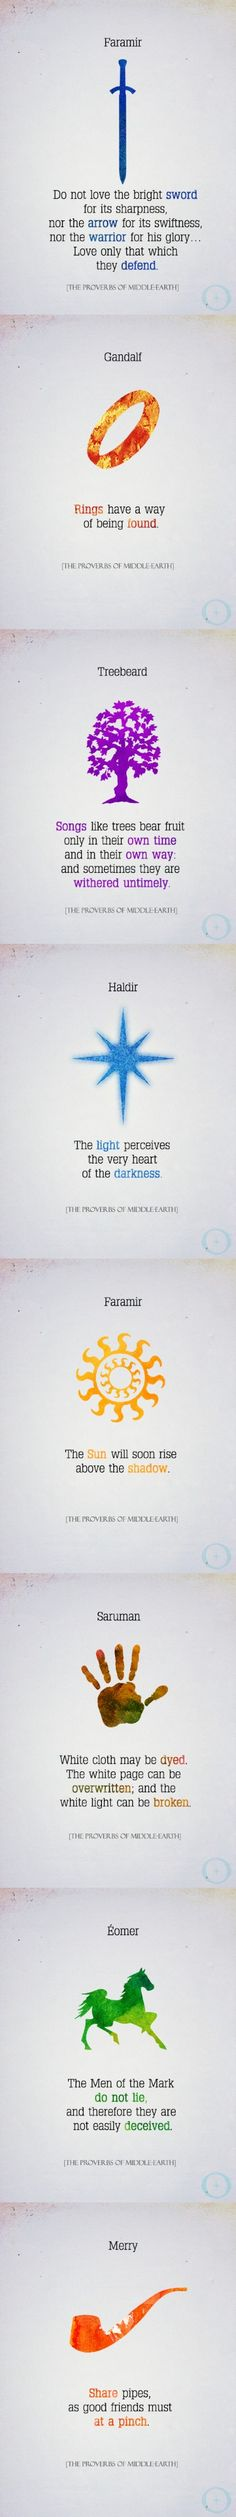 The Proverbs of Middle-earth, from Oloris Publishing - I love every single thing about these.